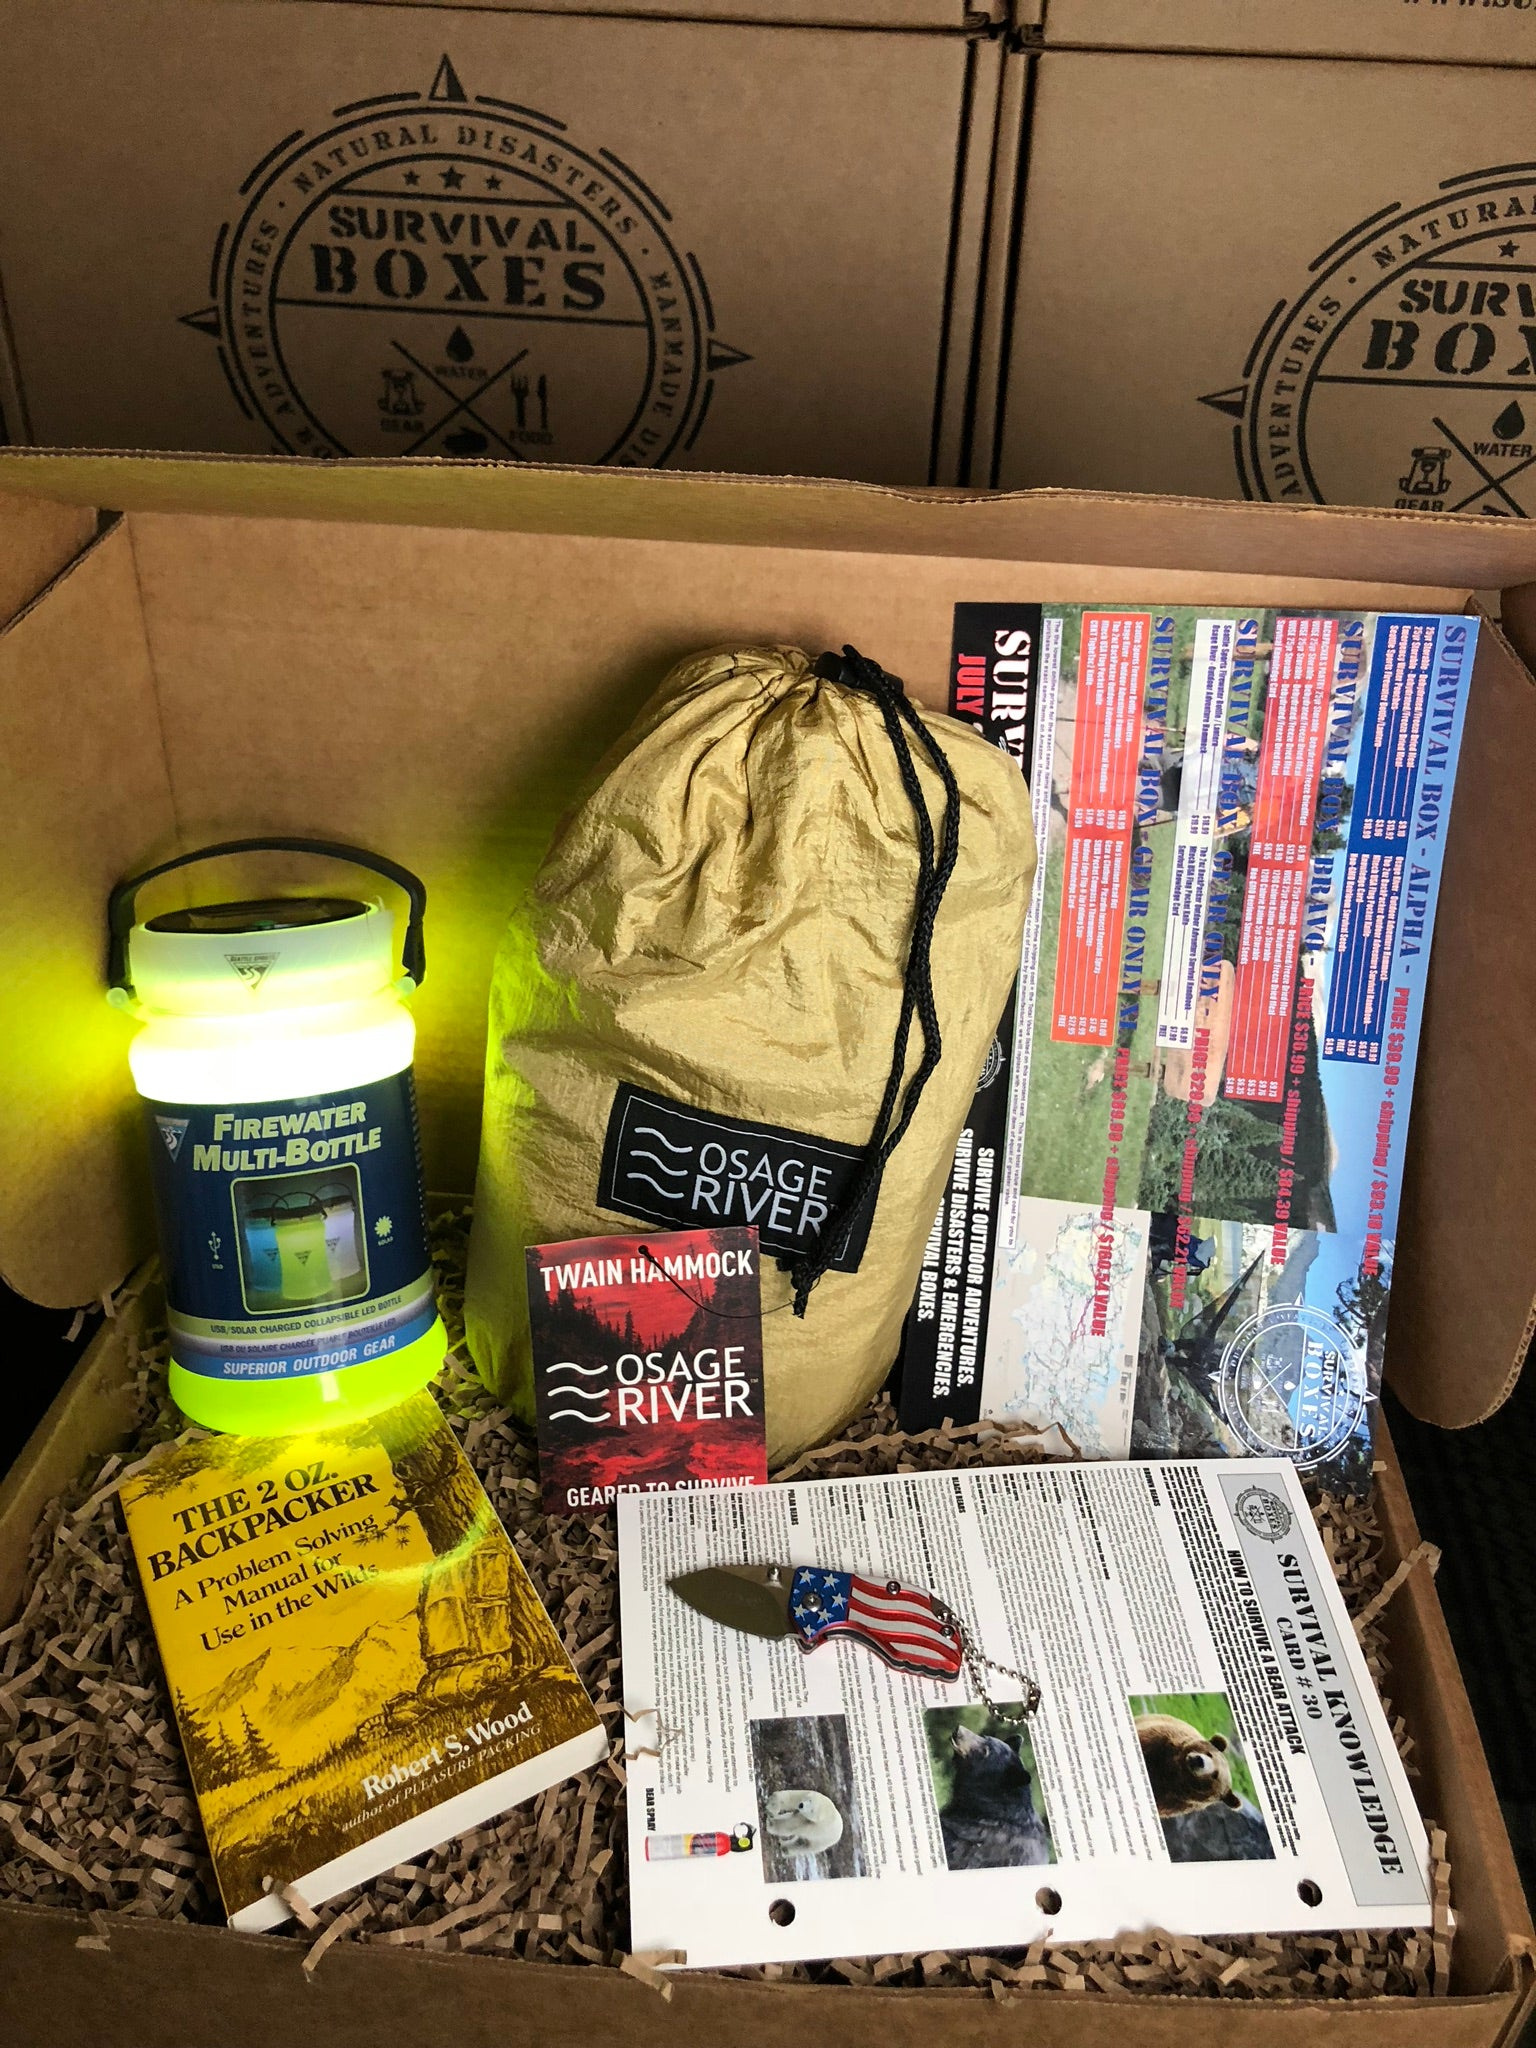 JULY 2018 SURVIVAL BOX- GEAR ONLY SURVIVING THE GREAT OUTDOORS  HIKING & CAMPING THE USA